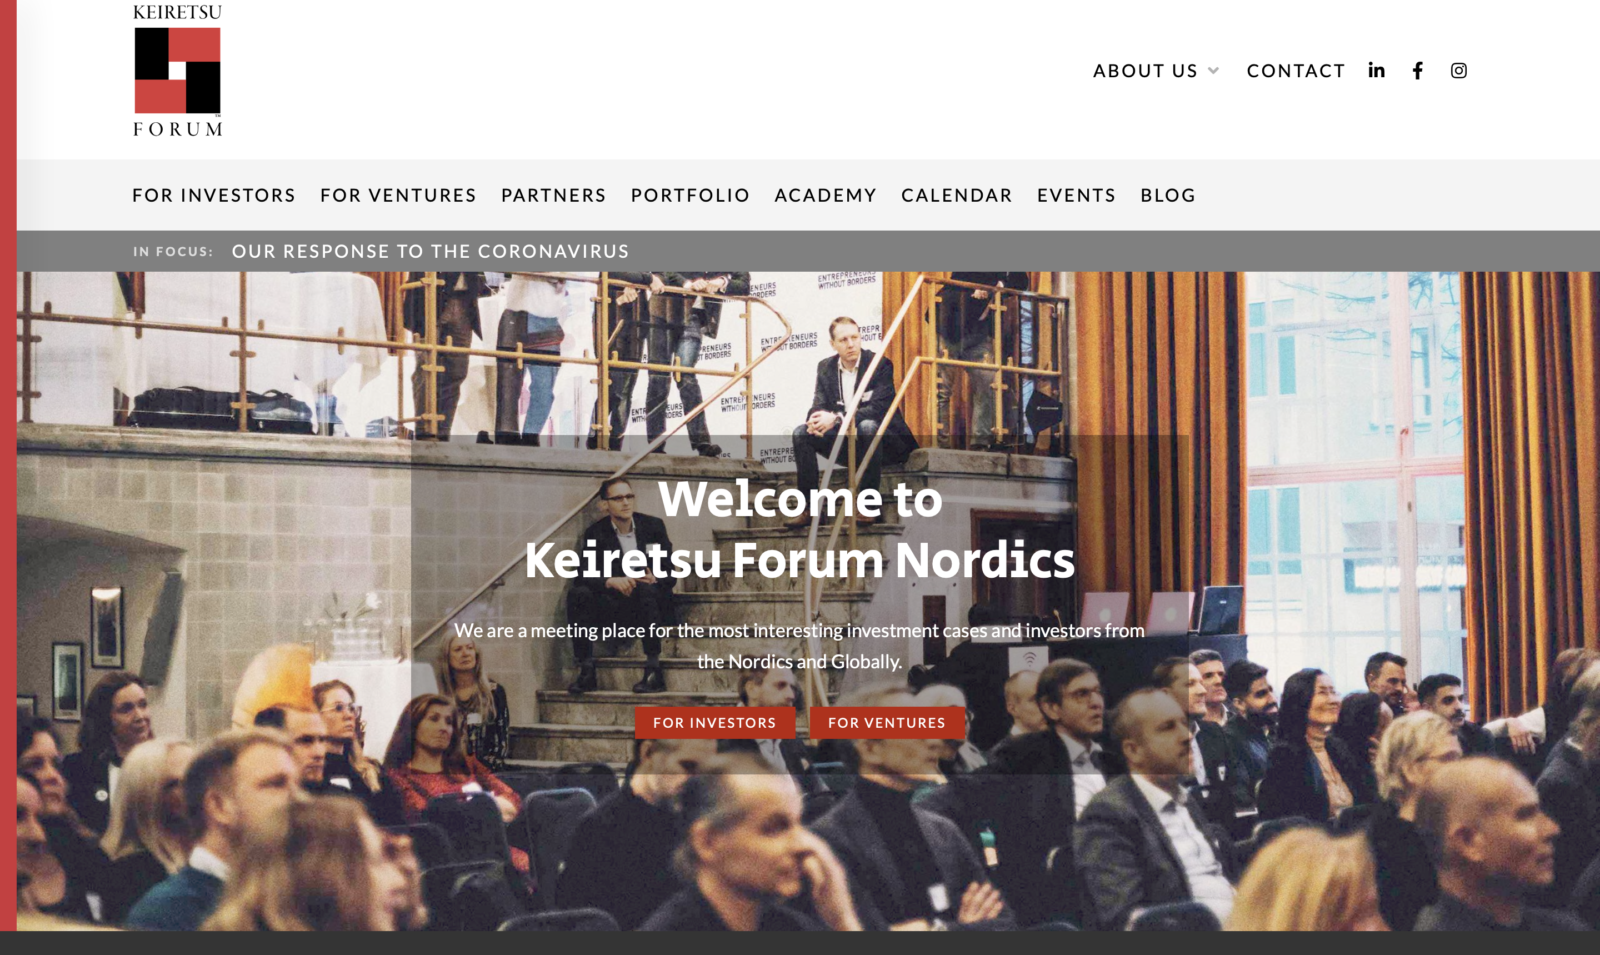 We are pleased to announce the launch of our updated website!